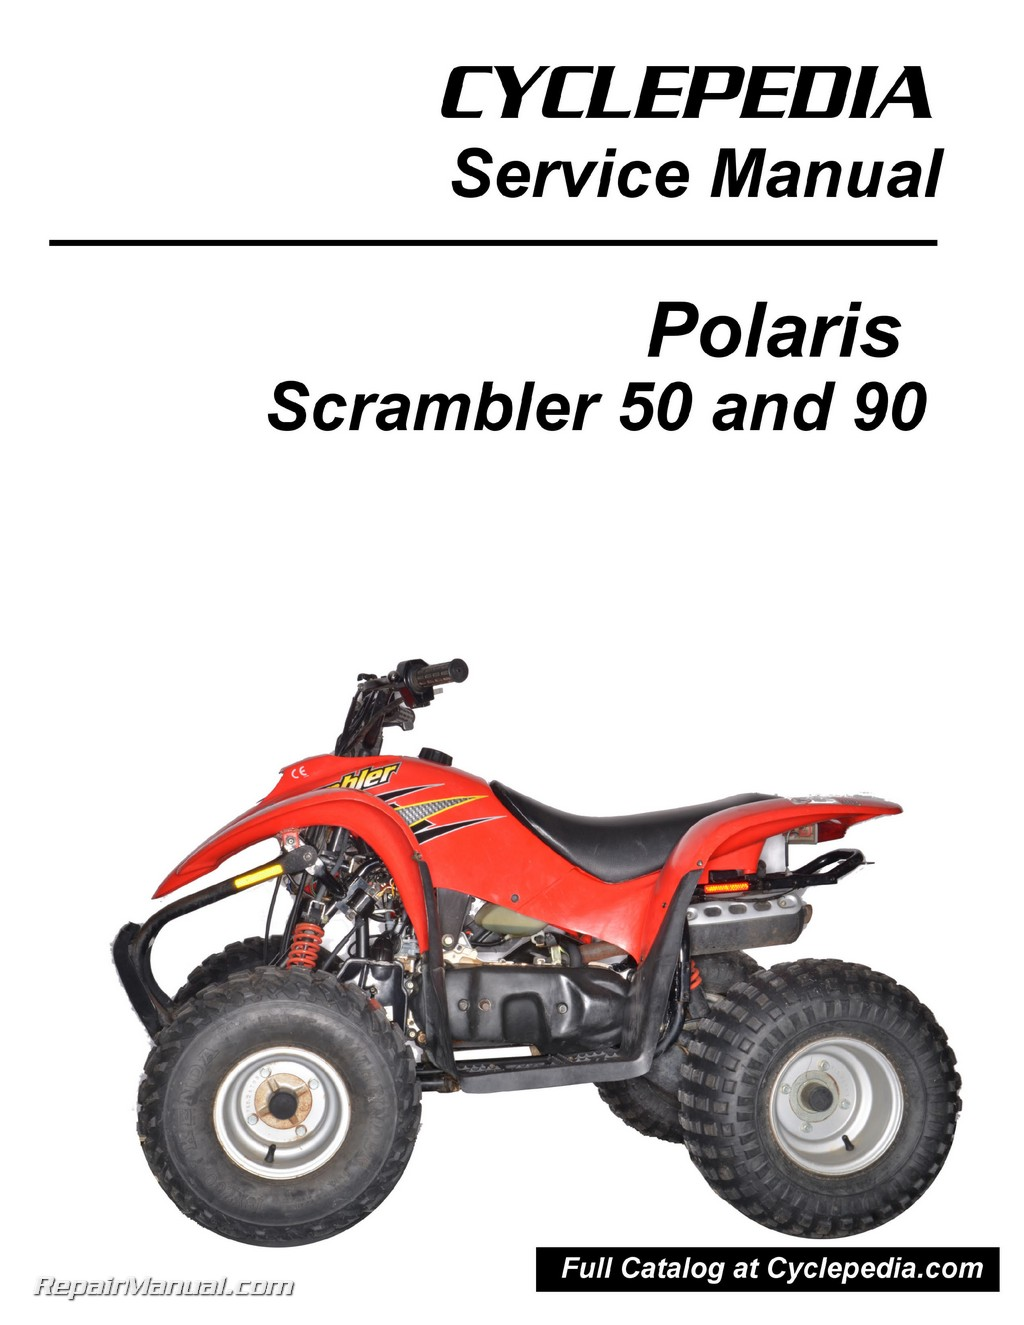 Migomag manuals ebook array 2001 polaris 325 425 xpedition atv repair manual download ebook rh 2001 polaris 325 fandeluxe Gallery